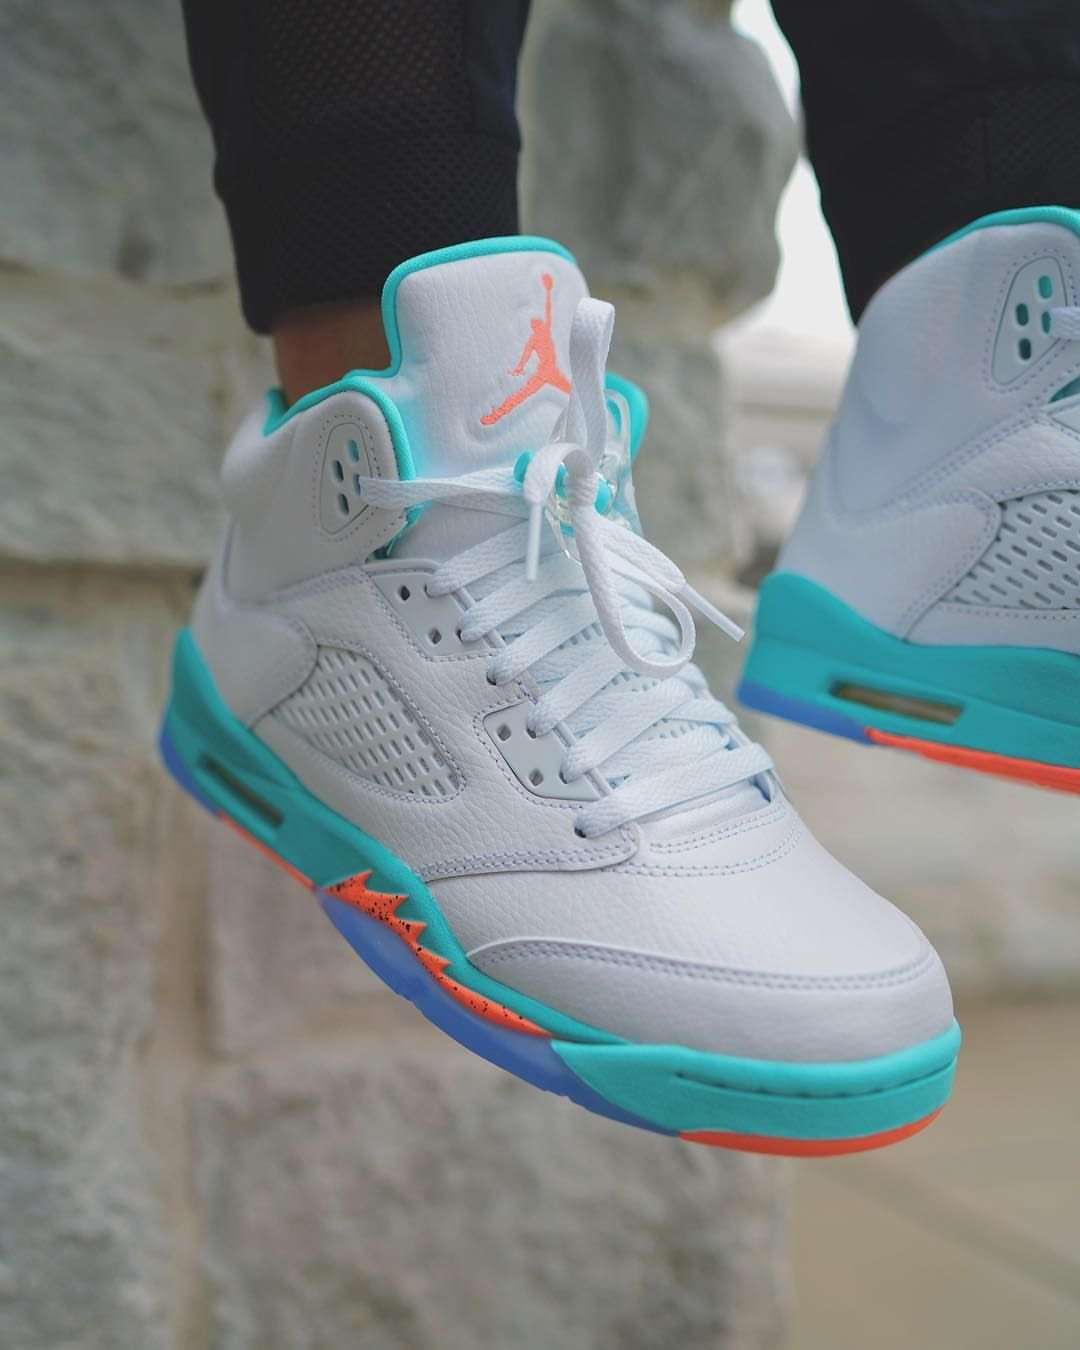 Air Jordan 5 Retro Light Aqua | Jordan shoes girls, Sneakers